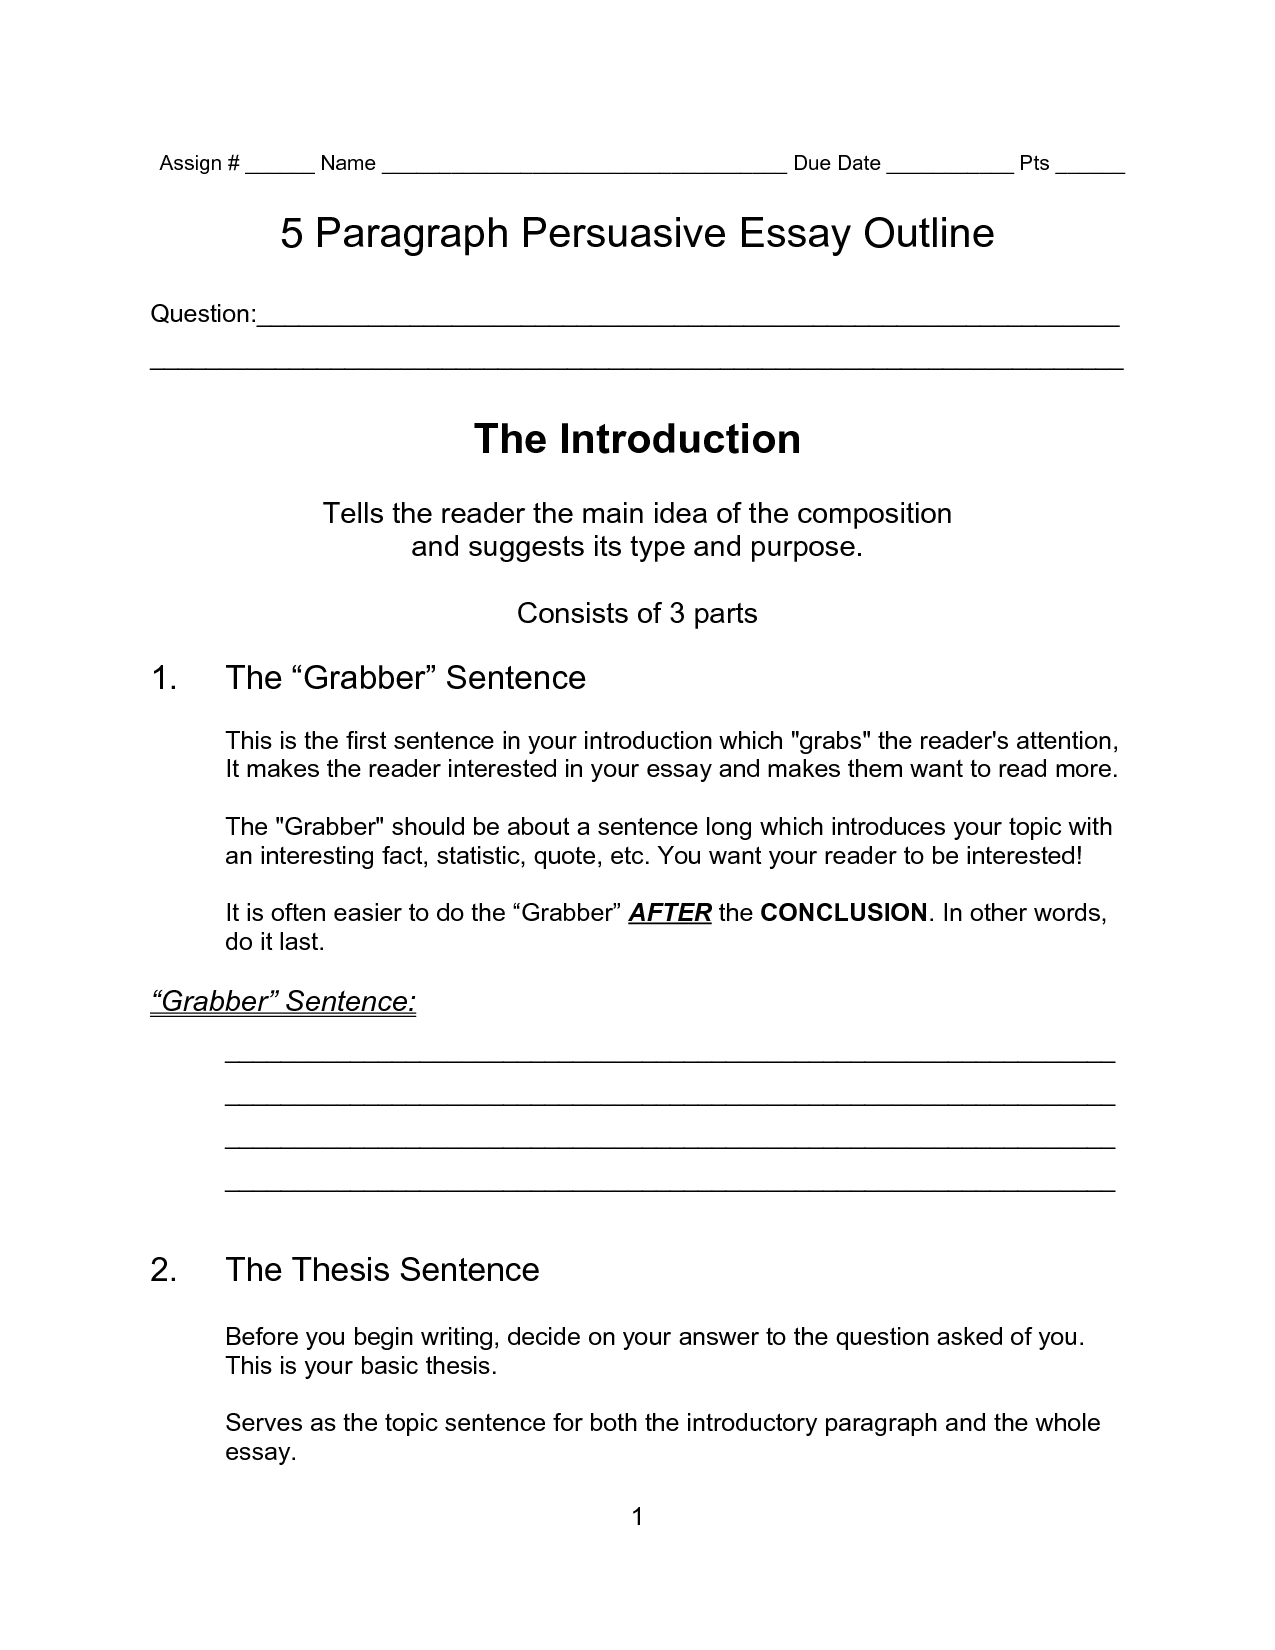 005 Essay Introduction Paragraph Persuasive Writing Opening Stupendous Outline Macbeth Narrative Example Full